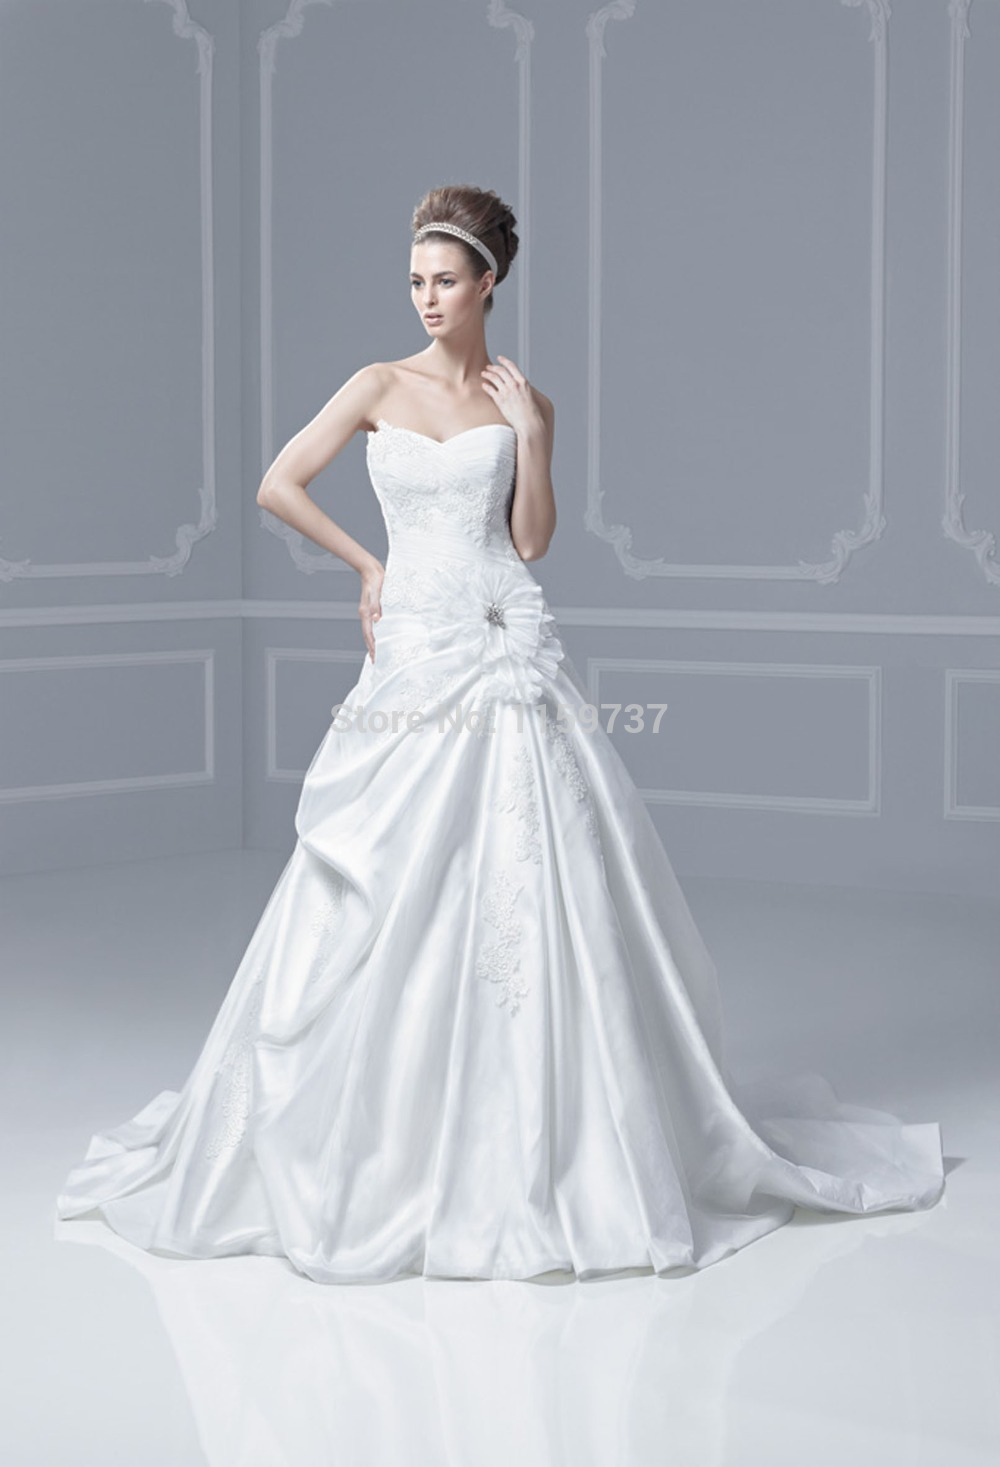 Nice Vestido Novia Paula Echevarria Crest - All Wedding Dresses ...